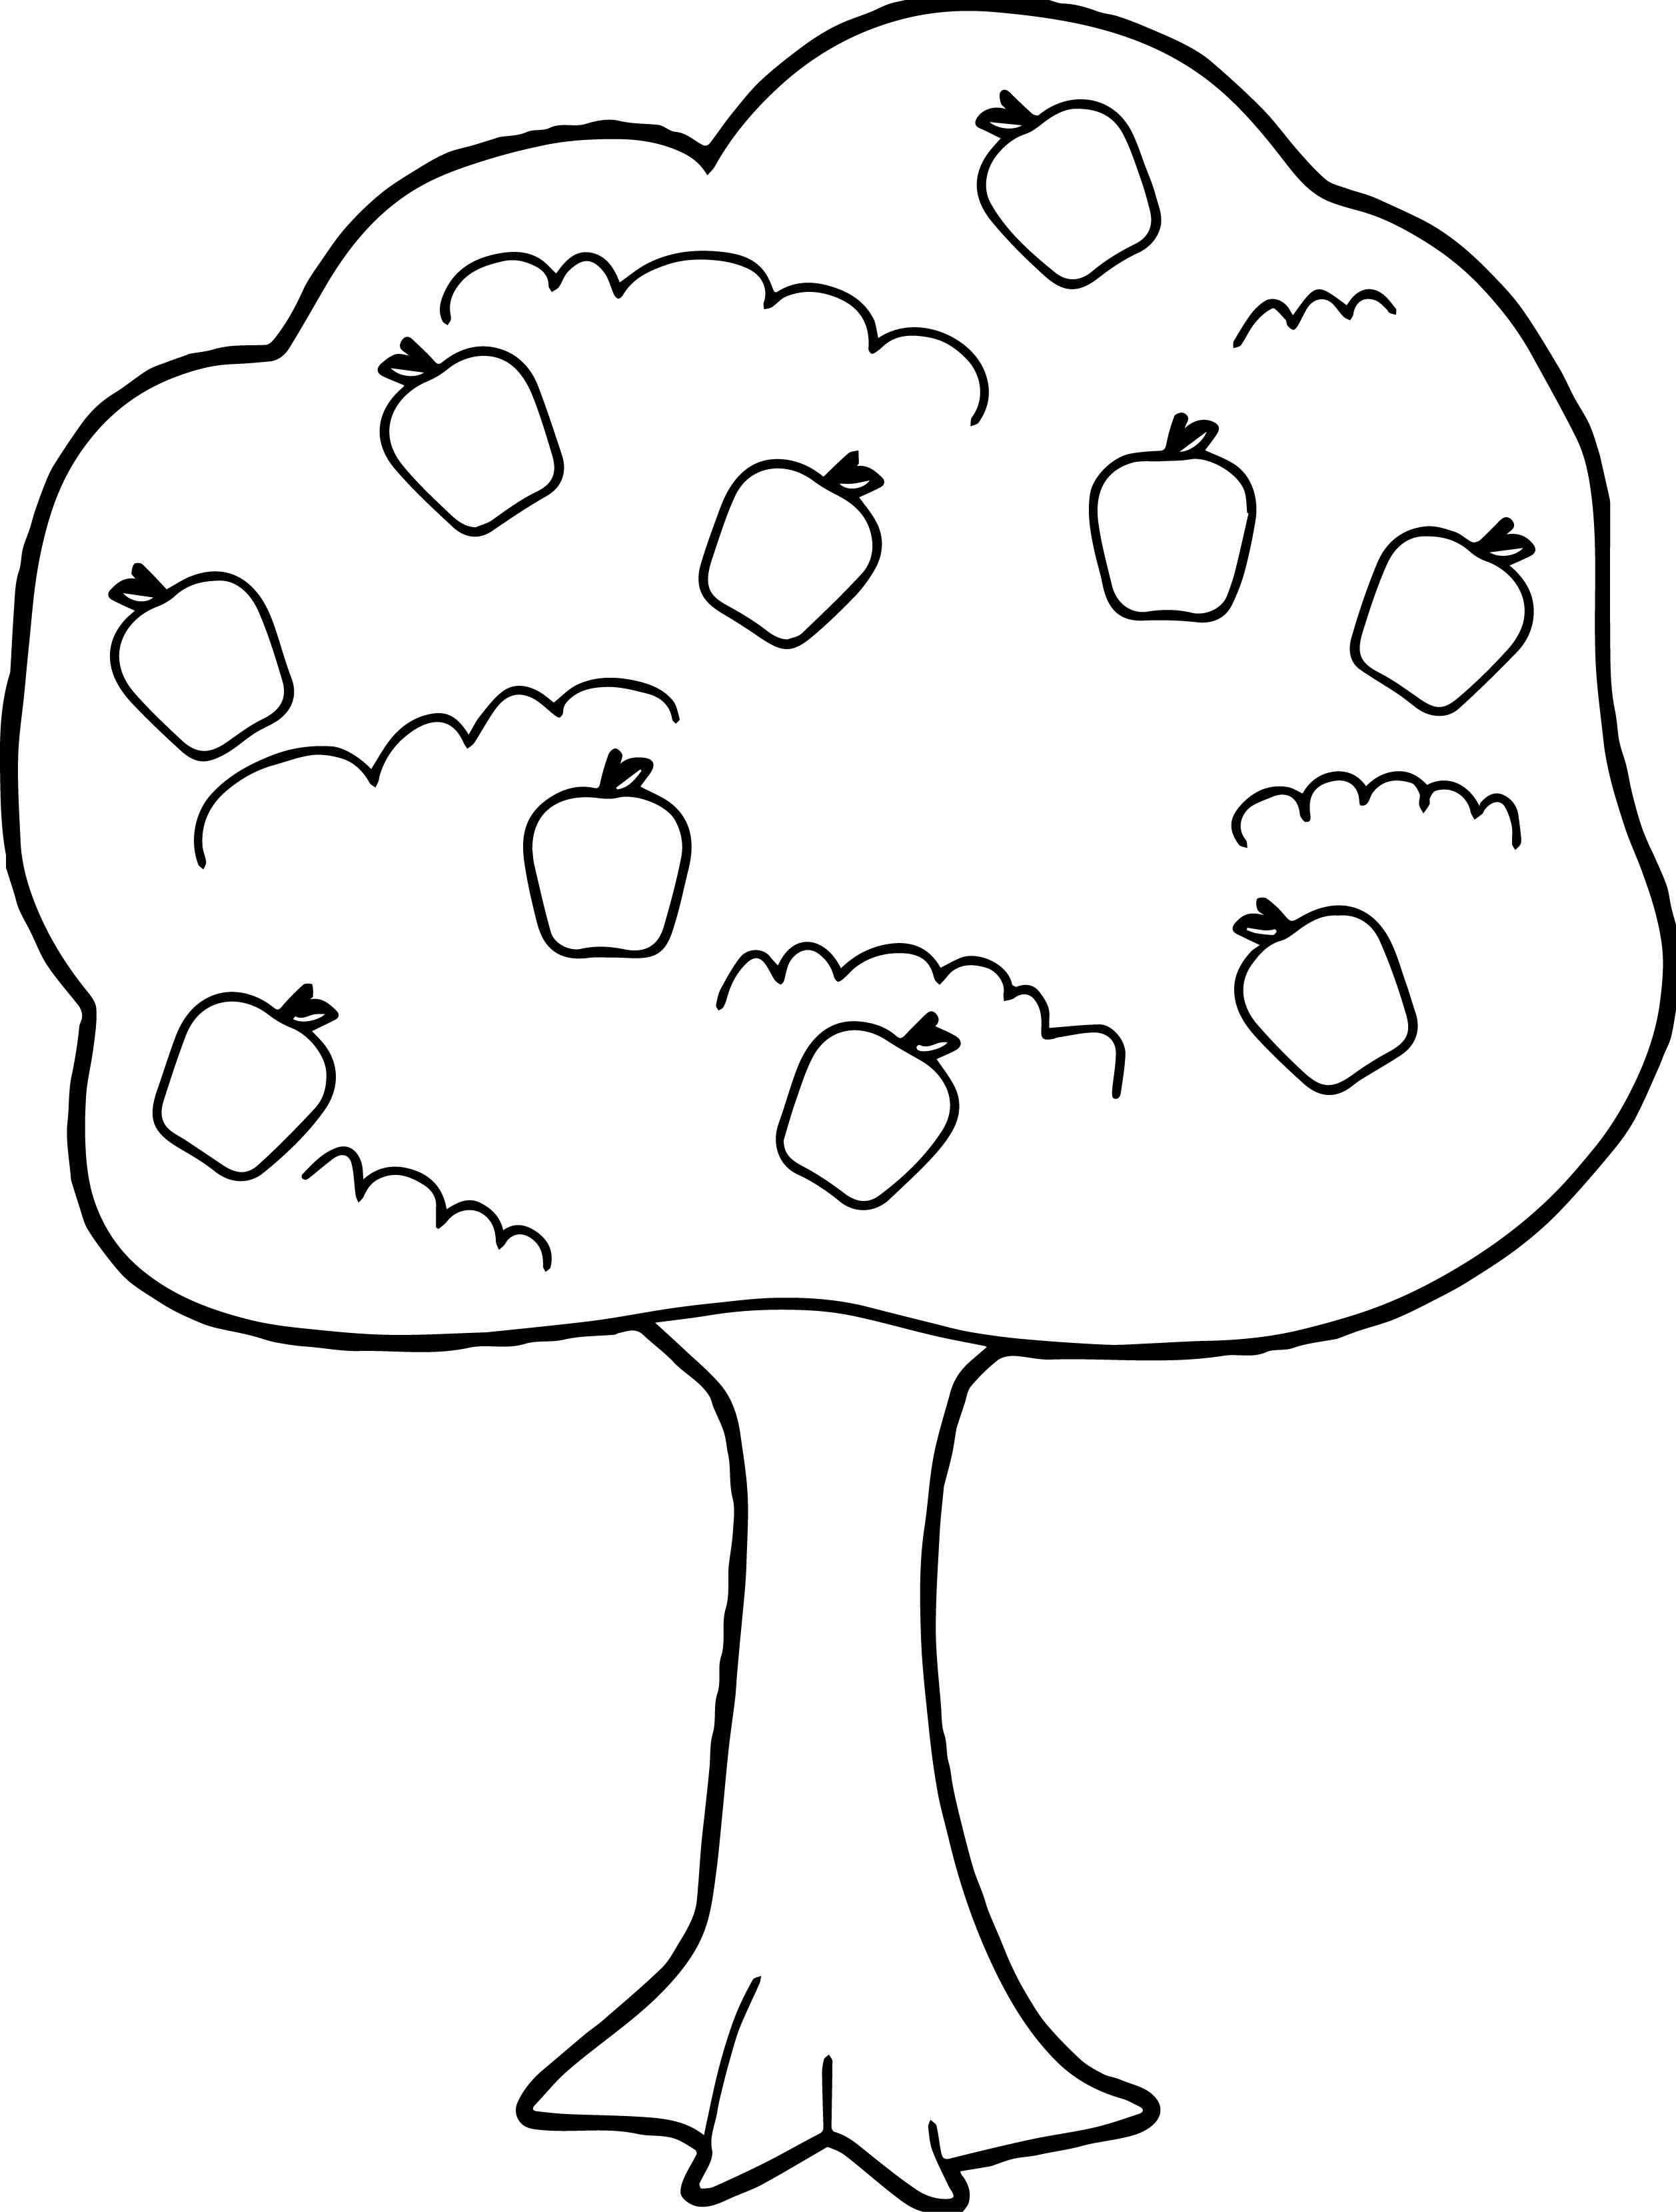 2515x3319 Stunning Elephant A Tree Coloring Page Adult Astonishing